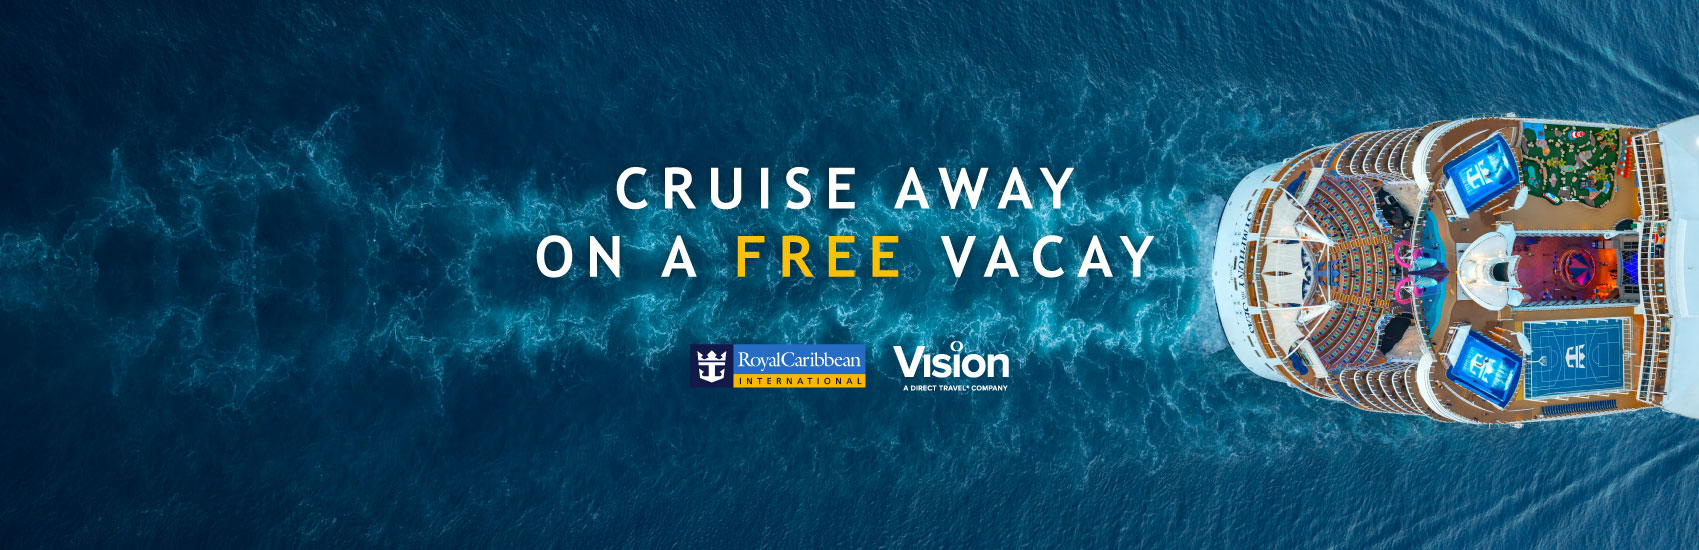 Cruise Away on a Free Vacay! 0